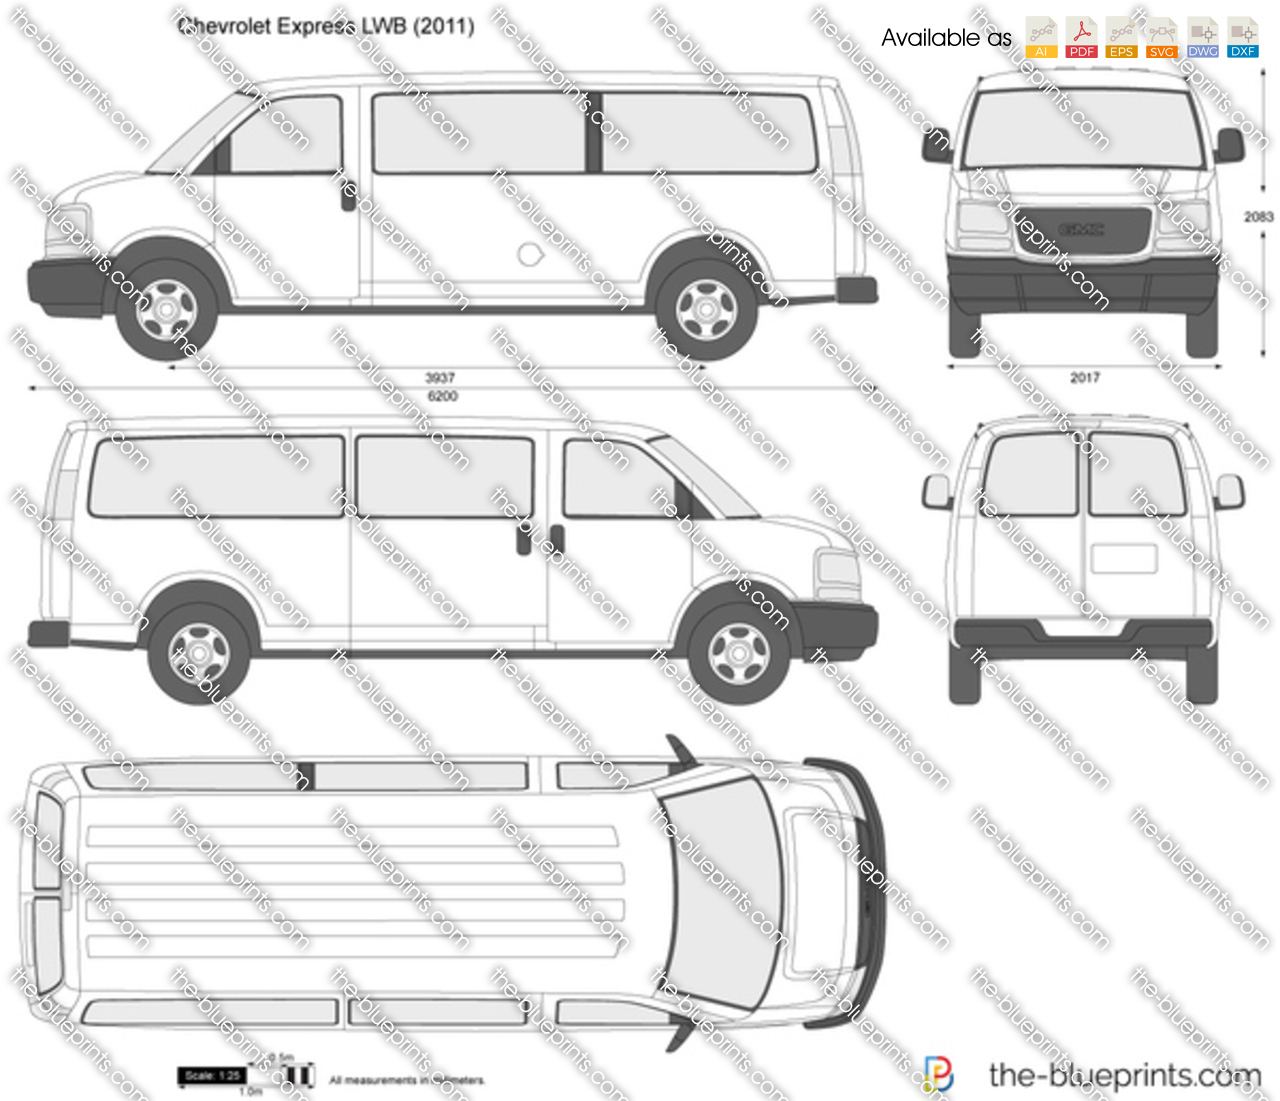 chevrolet express lwb vector drawing